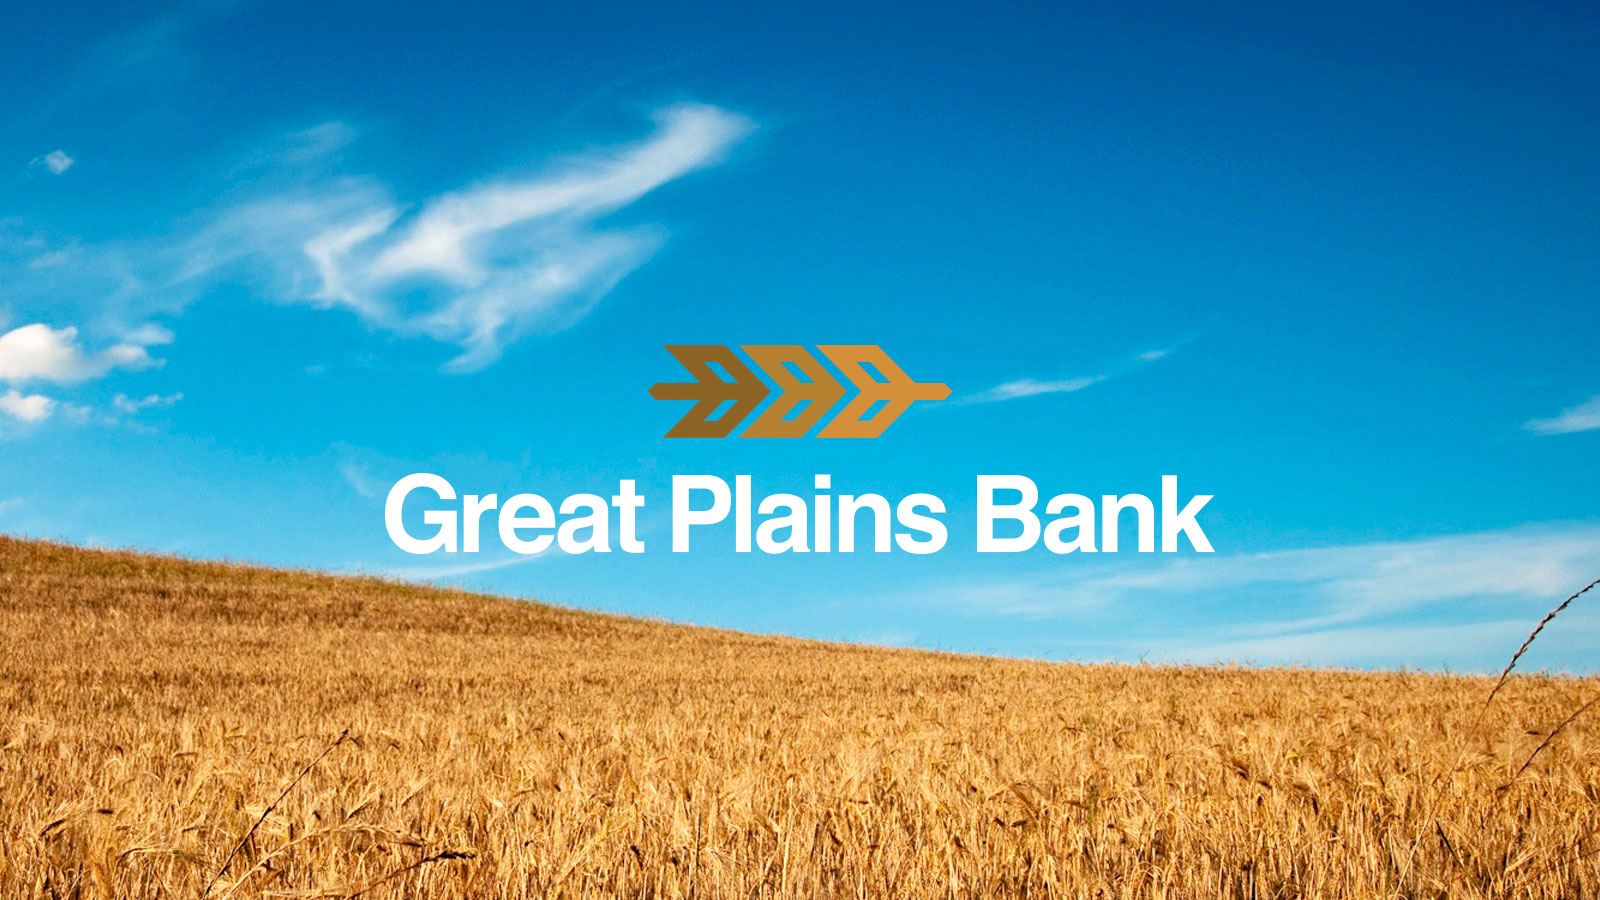 Rebrand project for Great Plains Bank